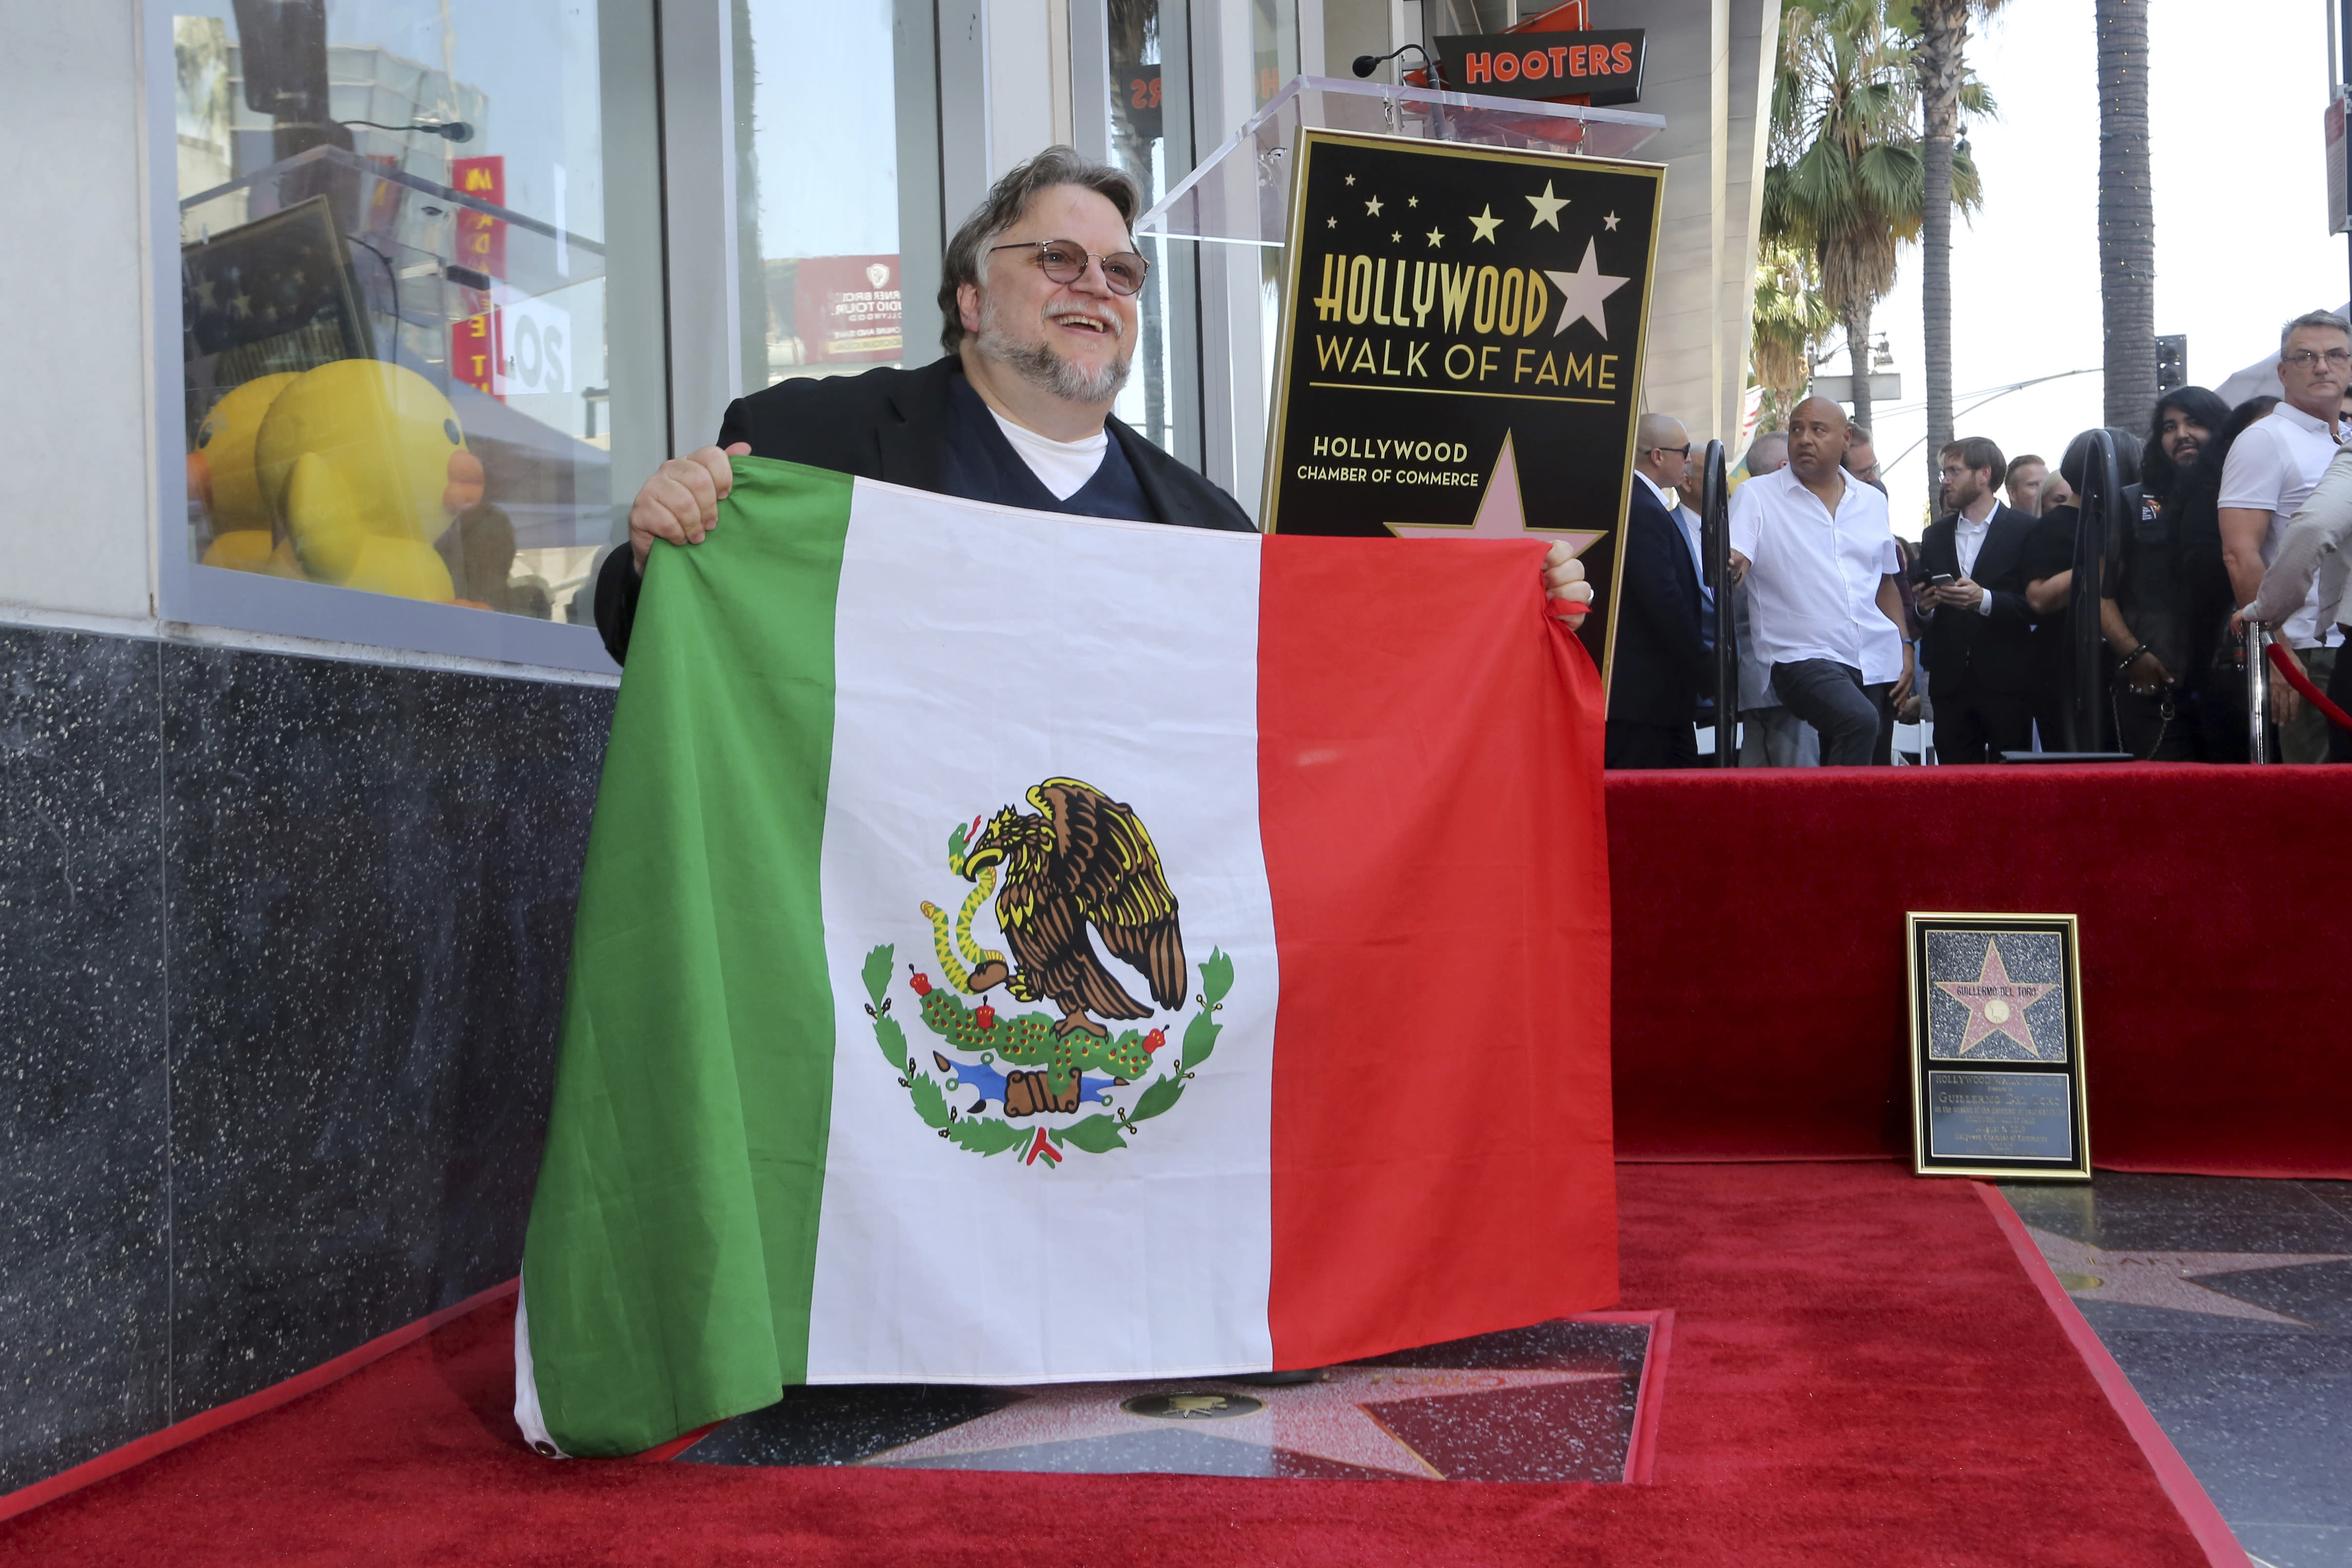 Mexican filmmaker Guillermo del Toro poses with the Mexican flag following a ceremony honoring him with a star at the Hollywood Walk of Fame on Tuesday, Aug. 6, 2019, in Los Angeles. (Photo by Willy Sanjuan/Invision/AP)